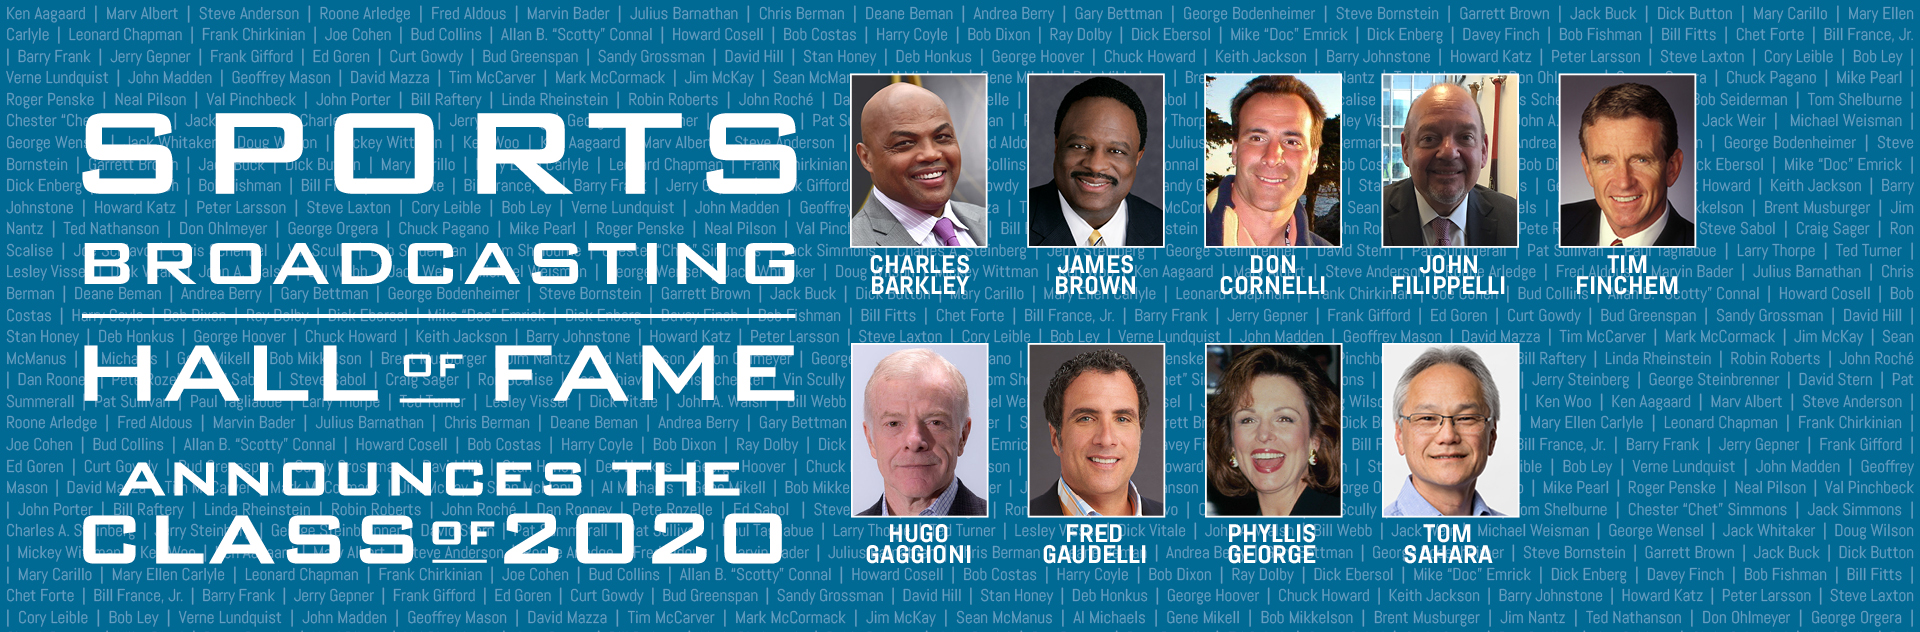 Sports Broadcasting Hall of Fame Announces Class of 2020